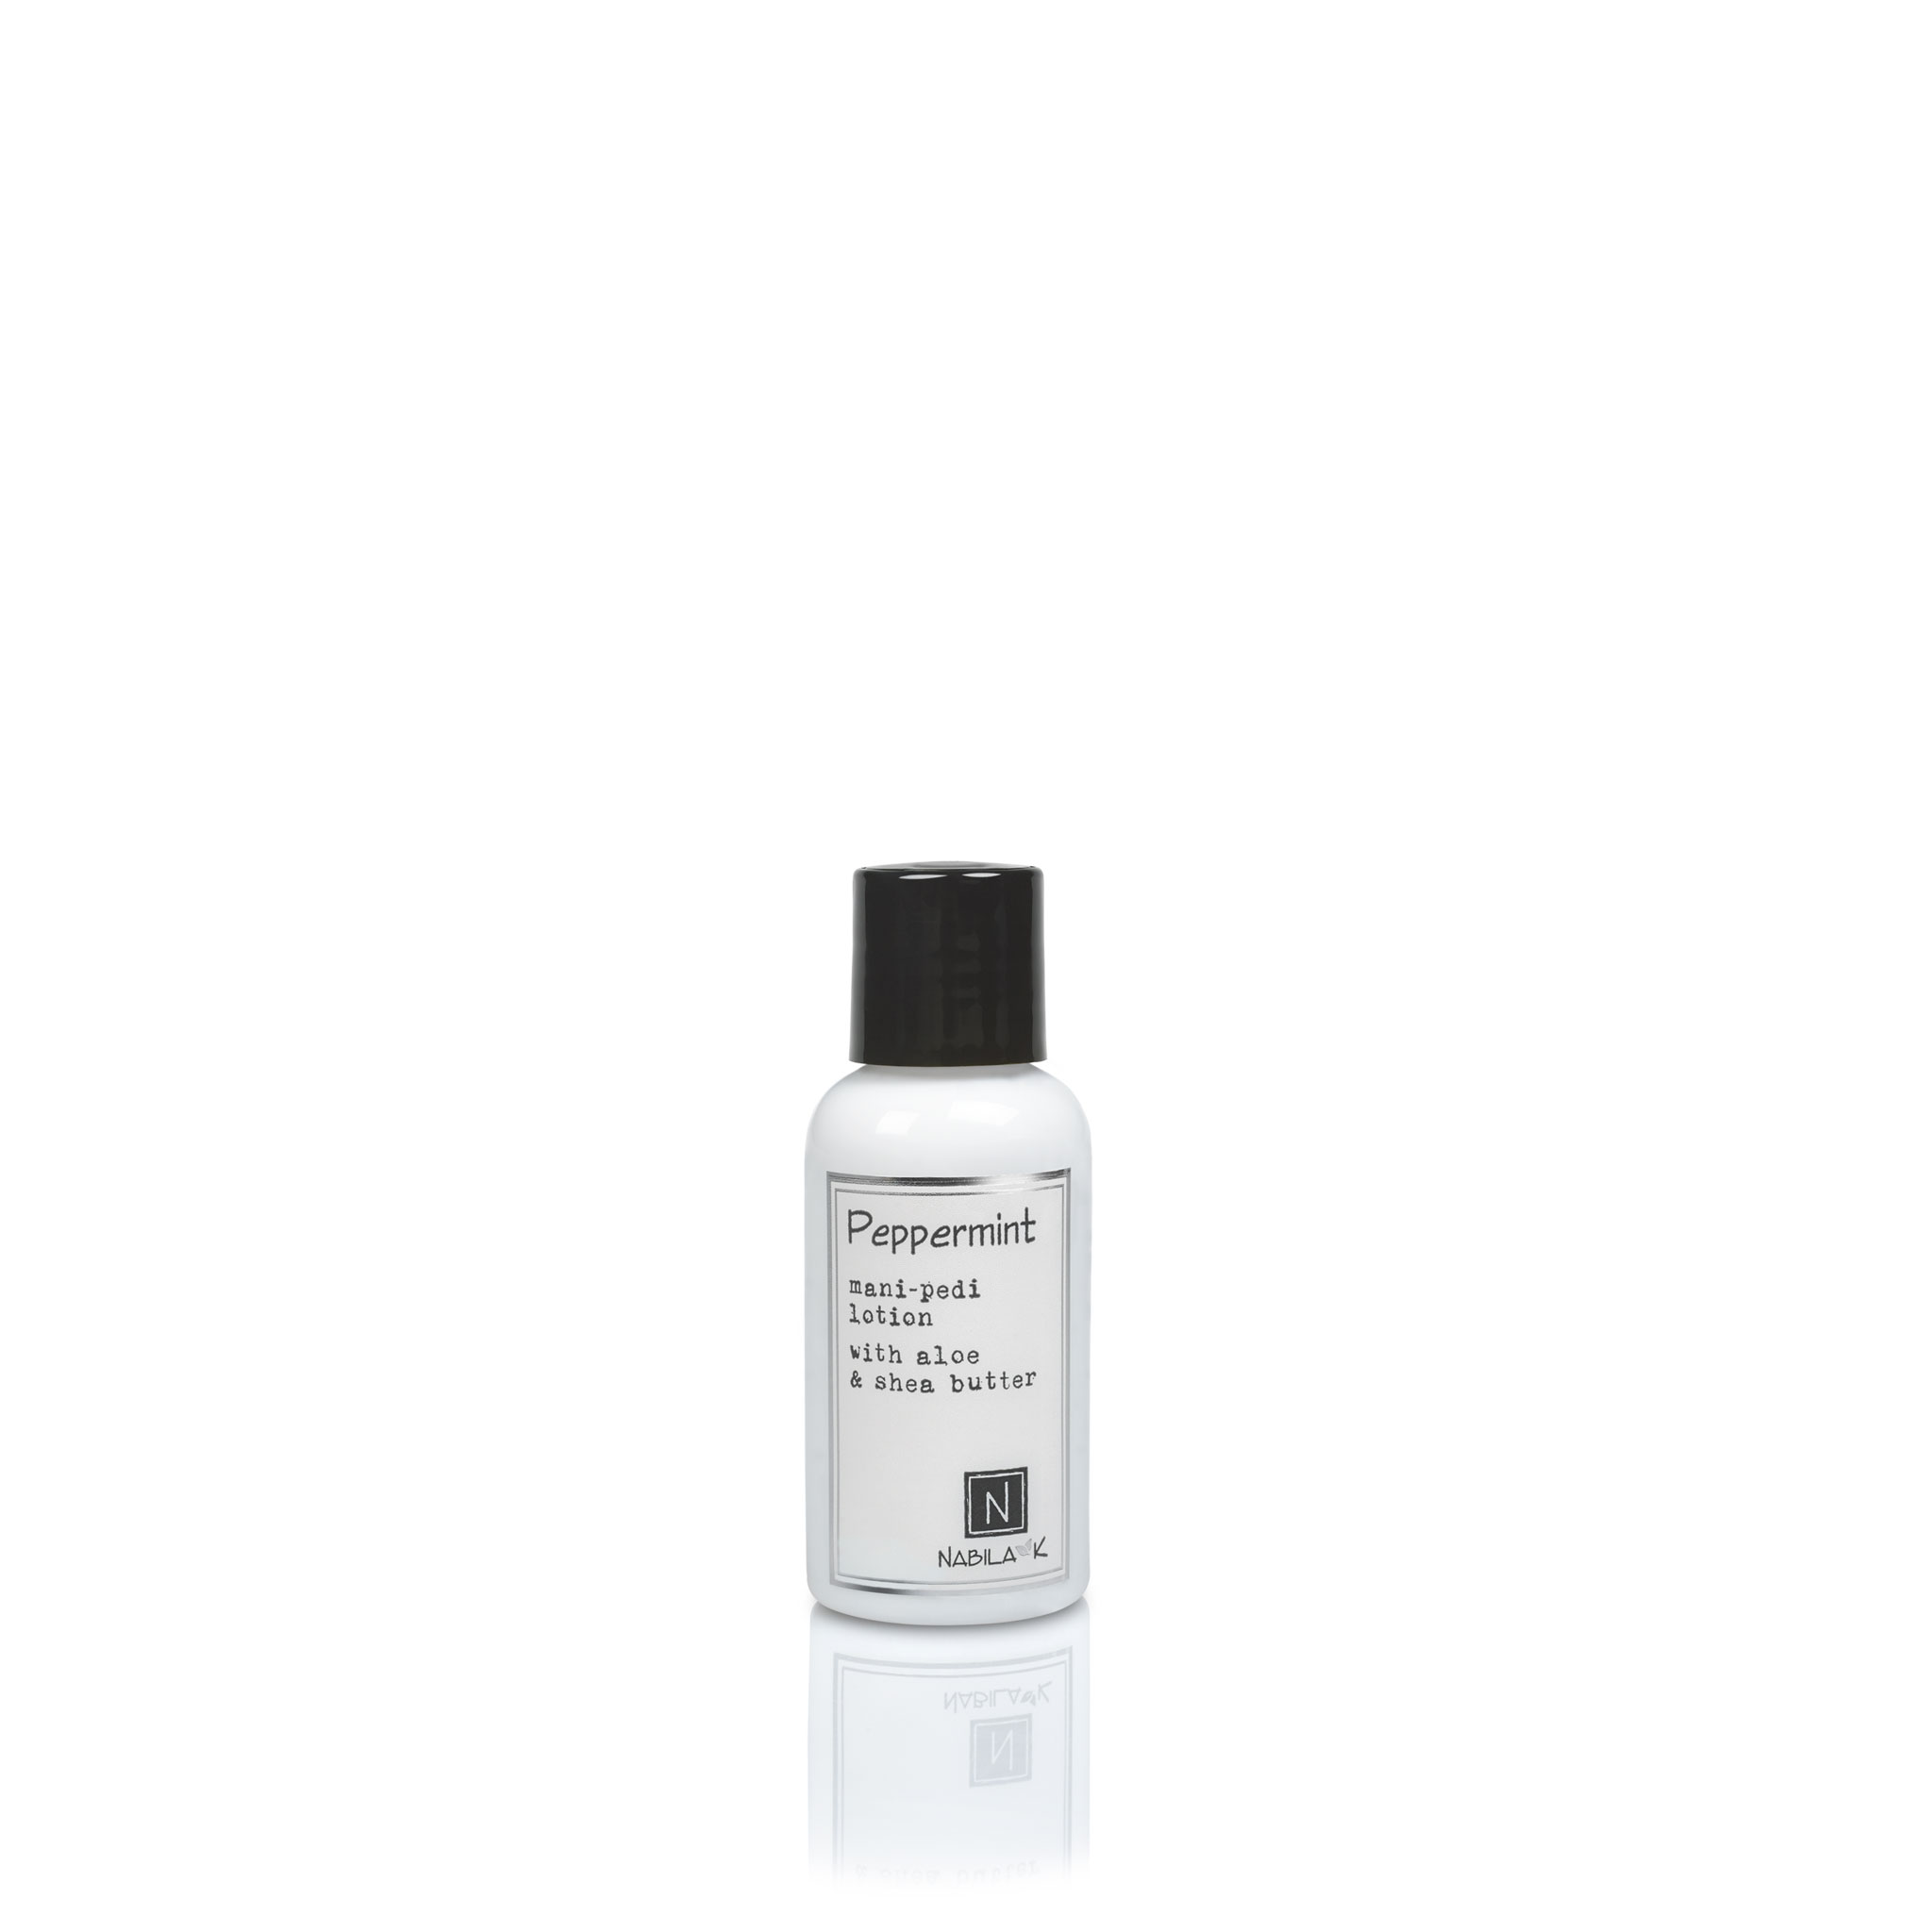 1 Travel Size Version of Peppermint Mani-Pedi Lotion with Aloe and Shea Butter